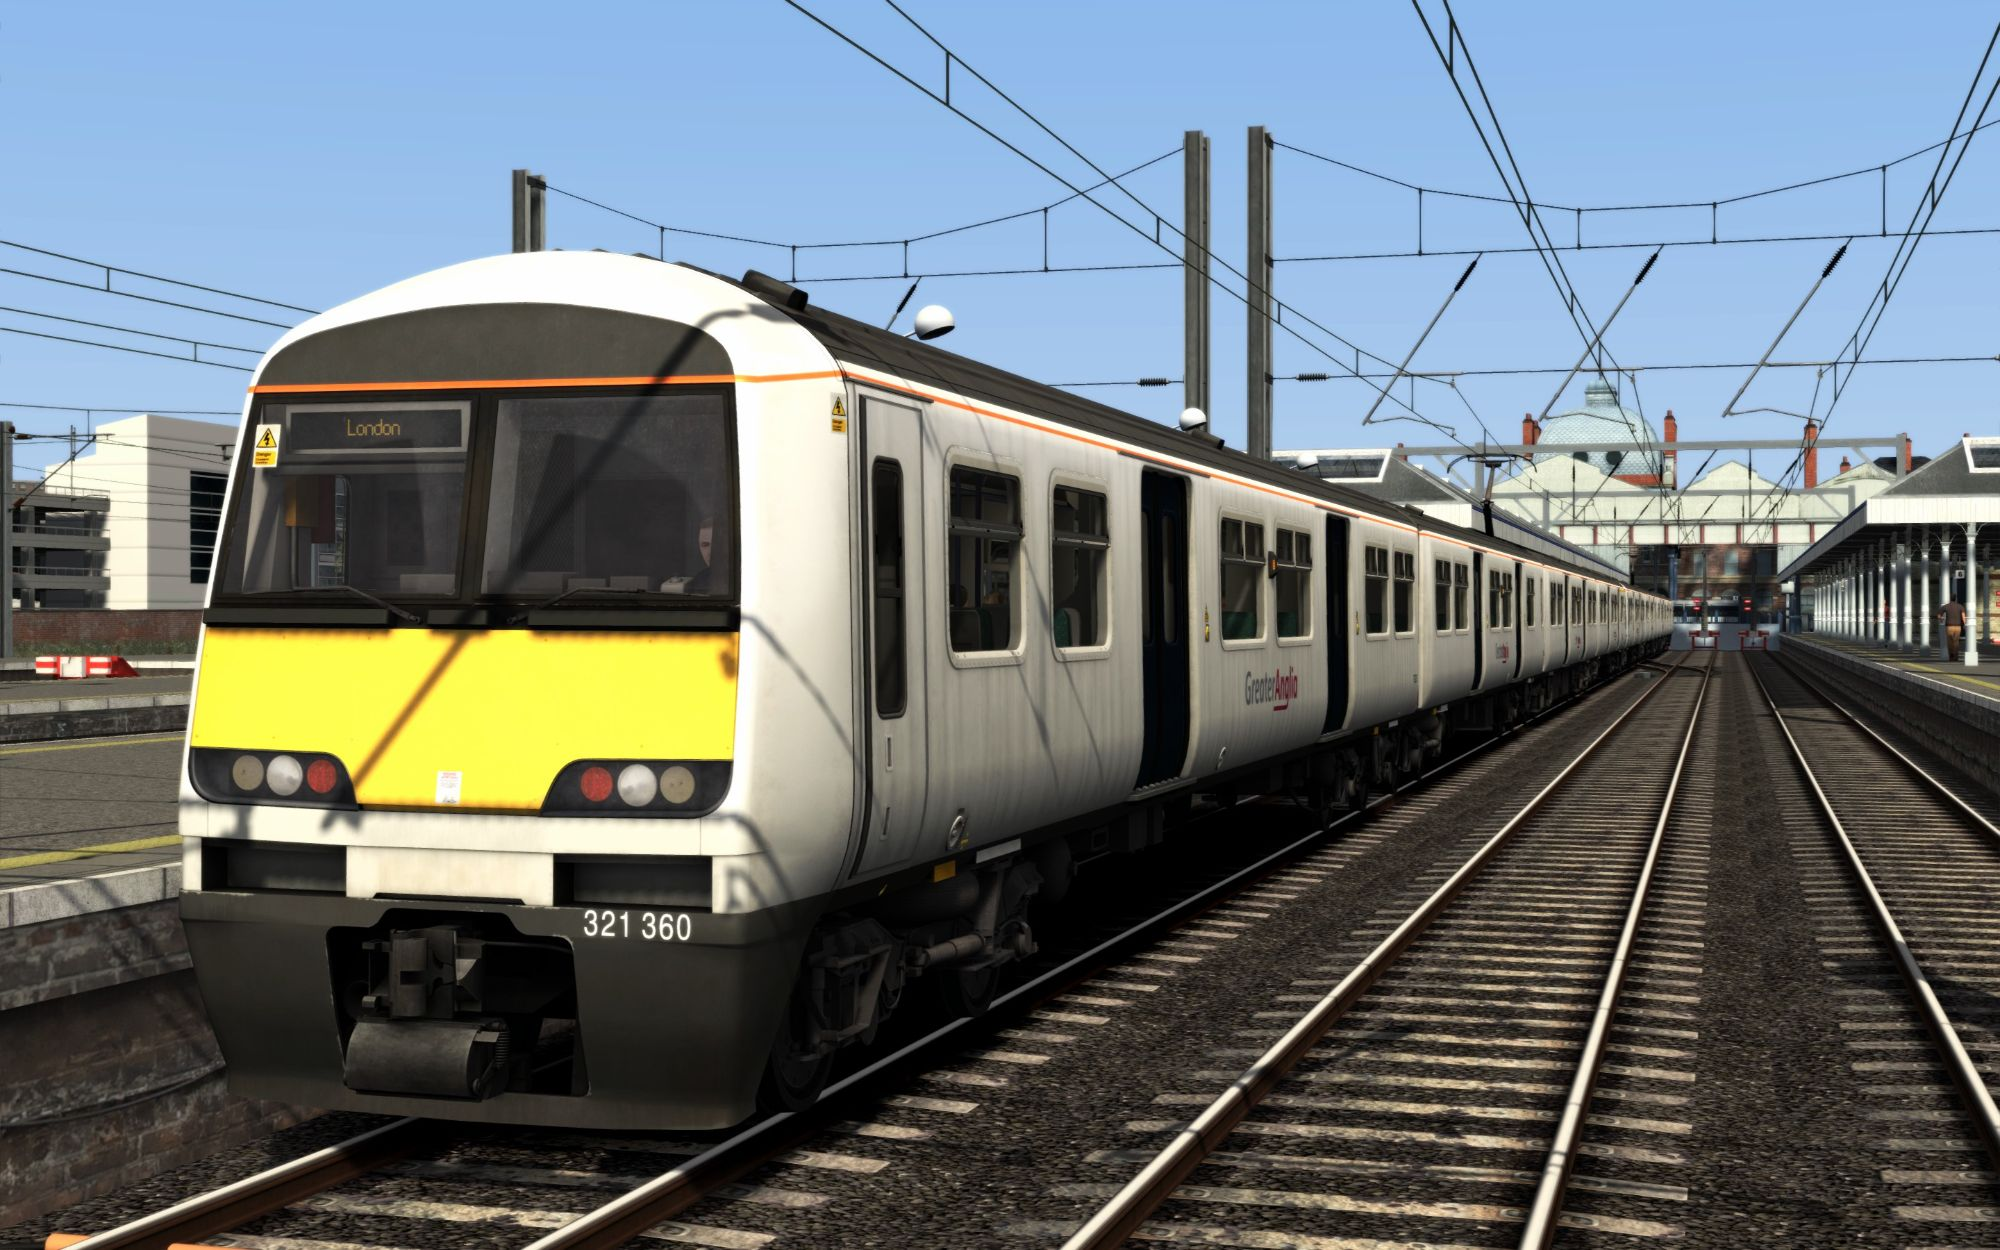 Image showing screenshot of the 1P23 - 0900 Norwich to London Liverpool Street scenario